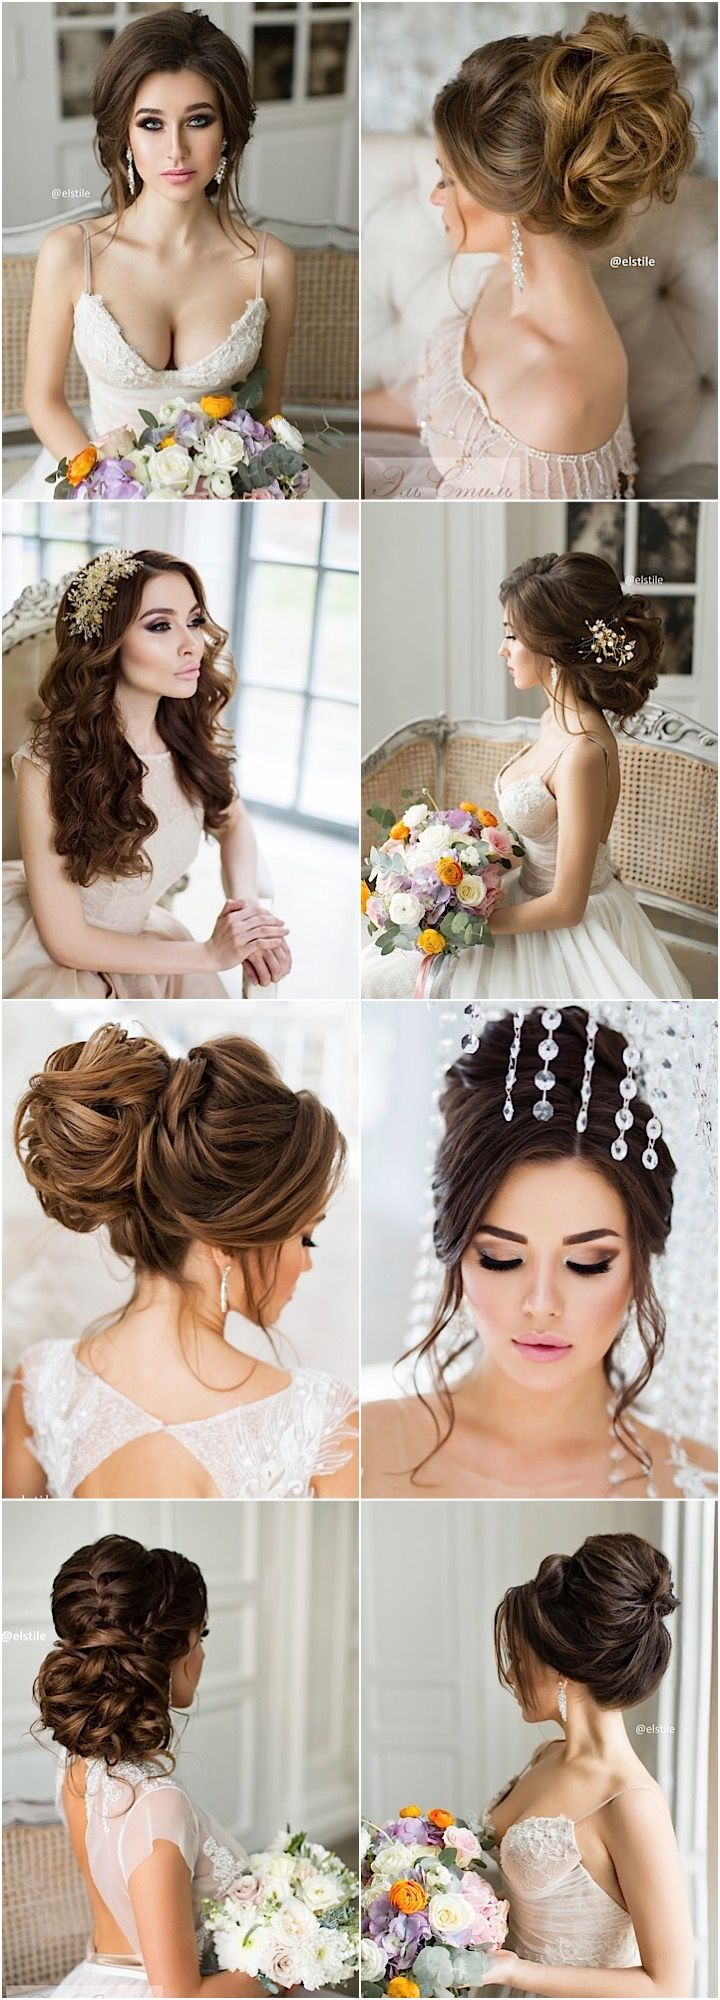 Featured Updo Wedding Hairstyle: Elstile; www.elstile.ru